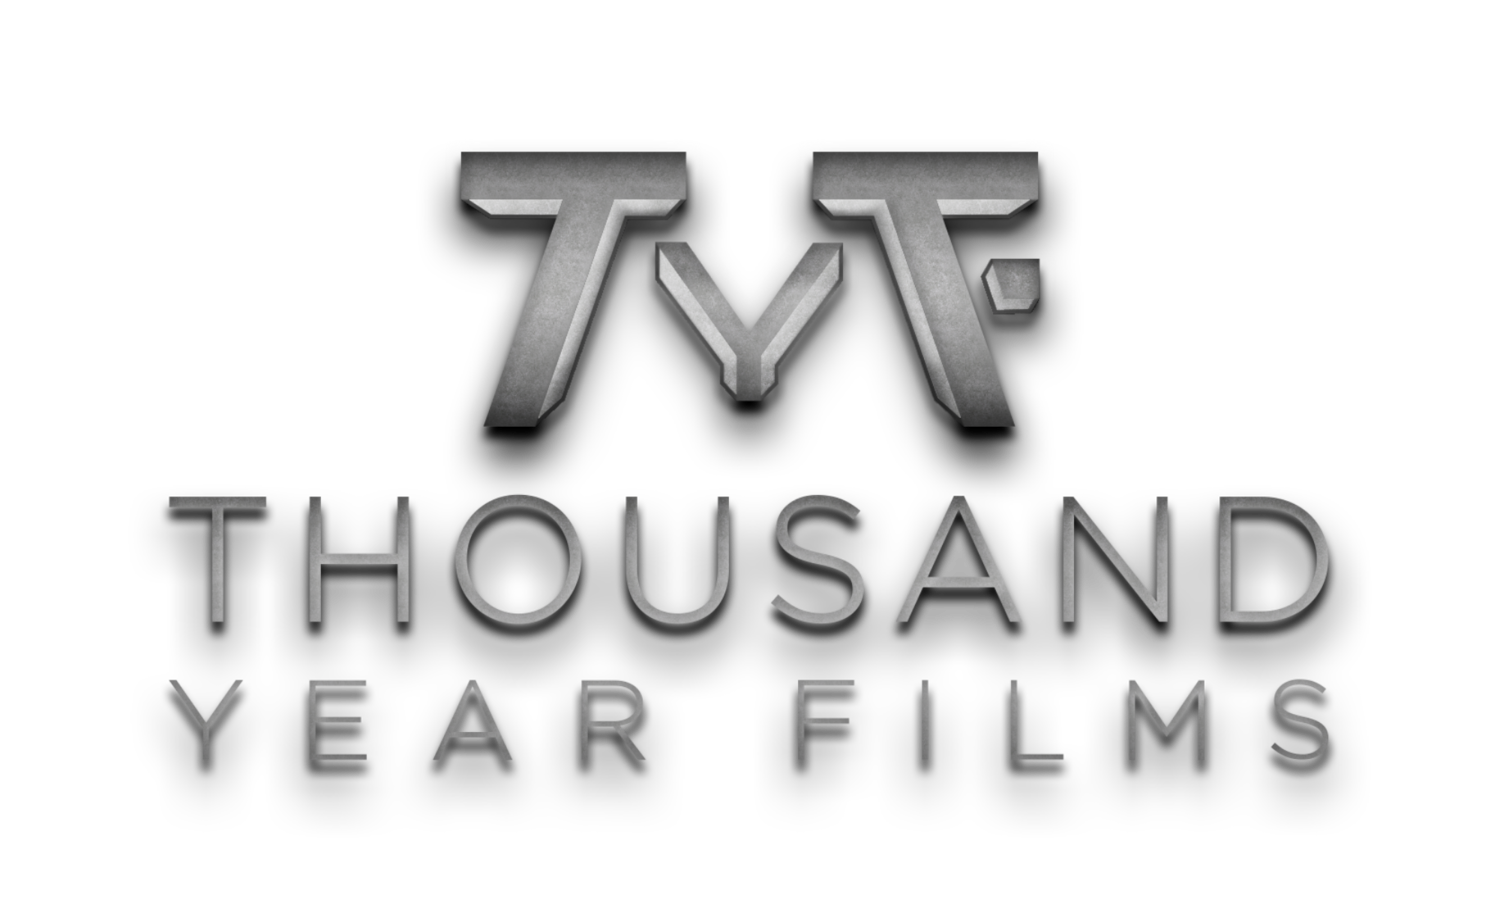 Thousand Year Films